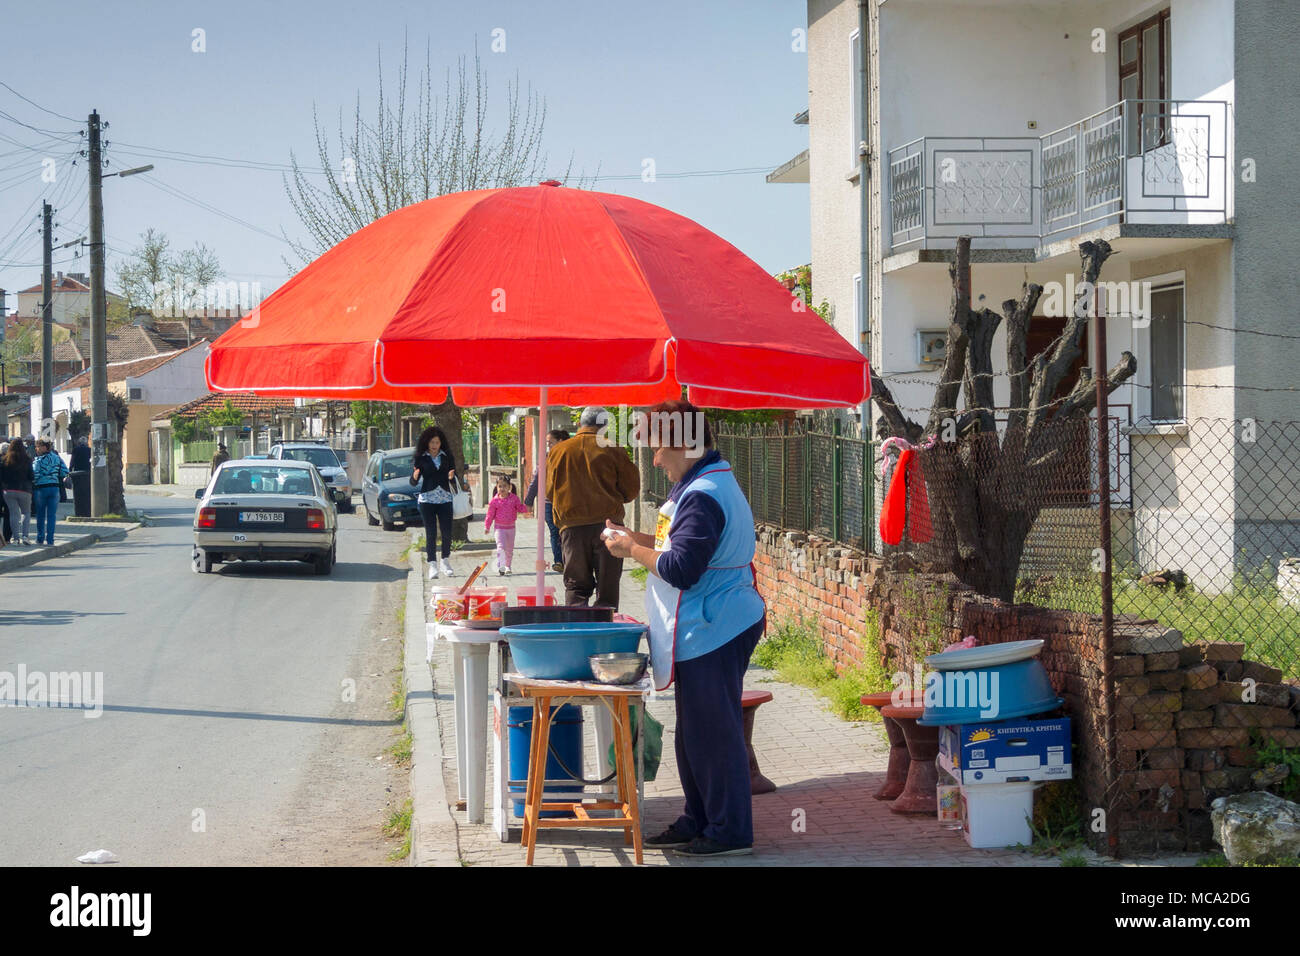 Elhovo, Bulgaria, 14 April 2018. Selling donuts on a street corner  on a bright sunny warm day. Clifford Norton Alamy Live News. - Stock Image